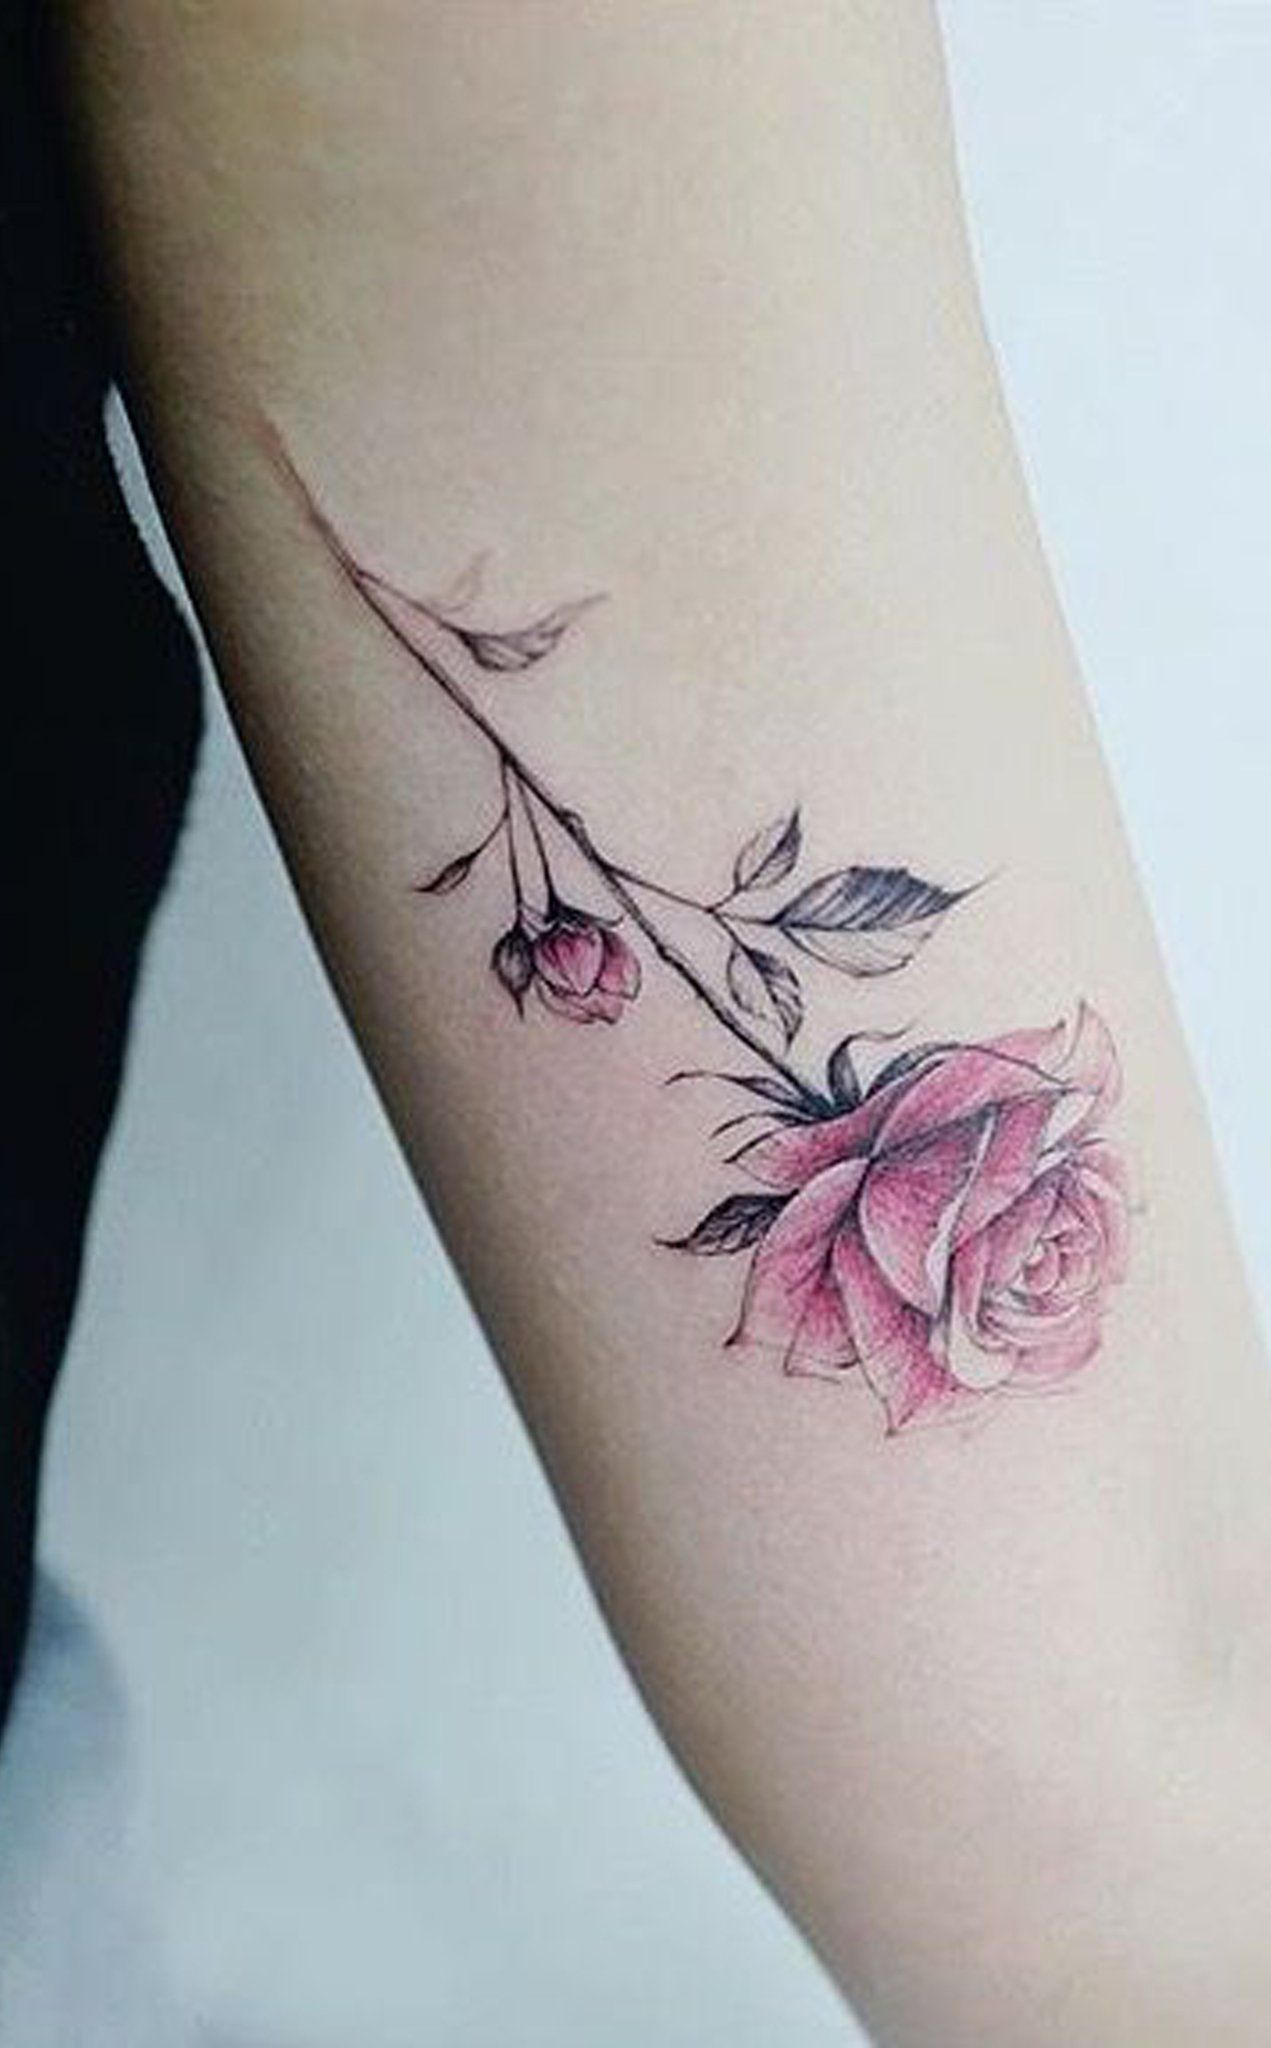 Mpinnell Twohandstattoo By Spidersinclaire Rose Tattoo On Arm Small Rose Tattoo Rose Tattoos